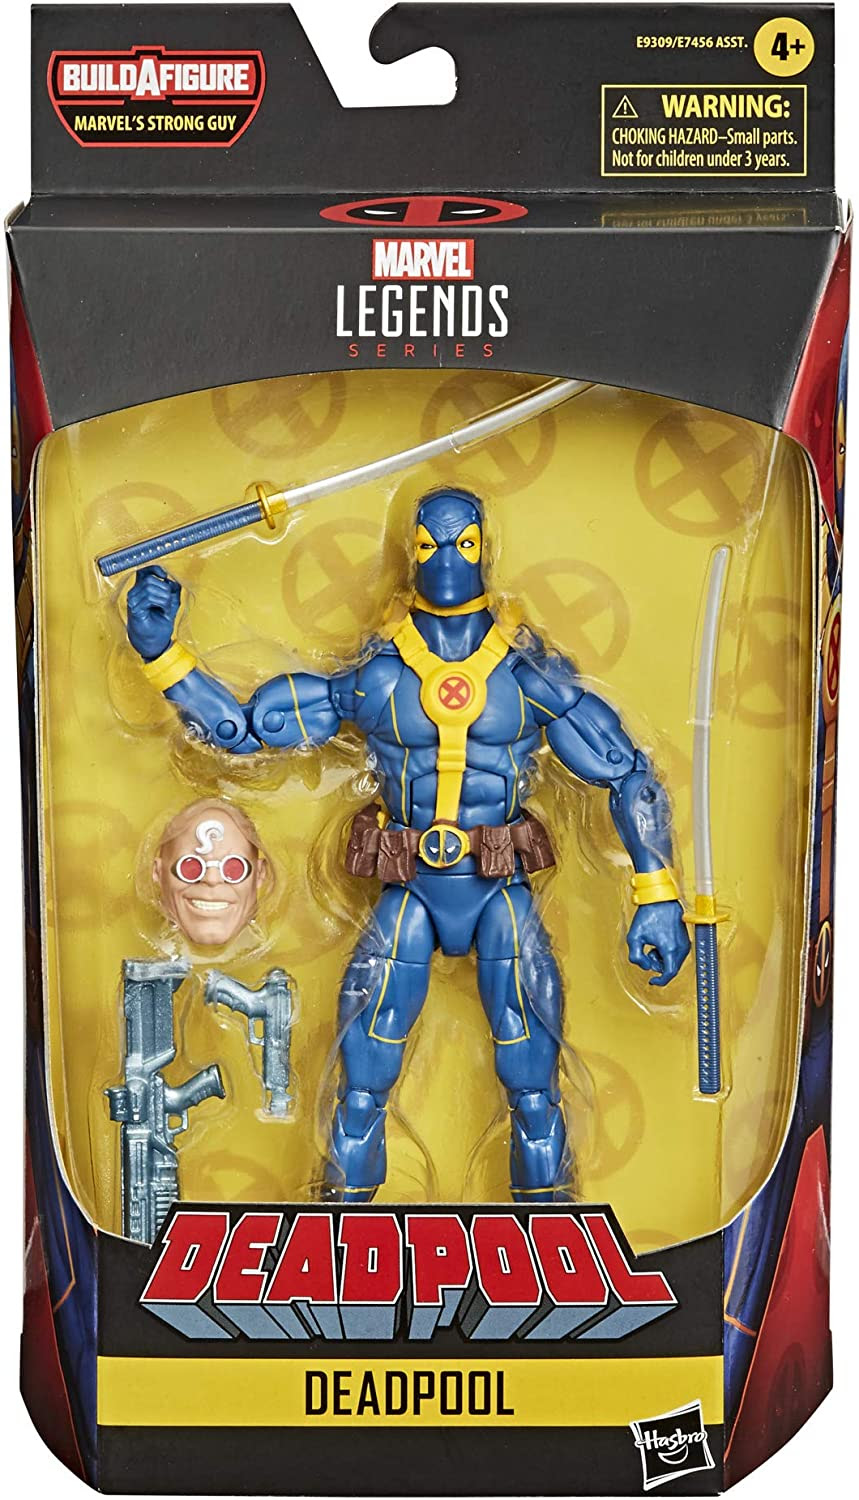 Image of Hasbro Marvel Legends Series Deadpool Collection 6-inch Blue Deadpool Action Figure Toy Premium Design and 1 Accessory